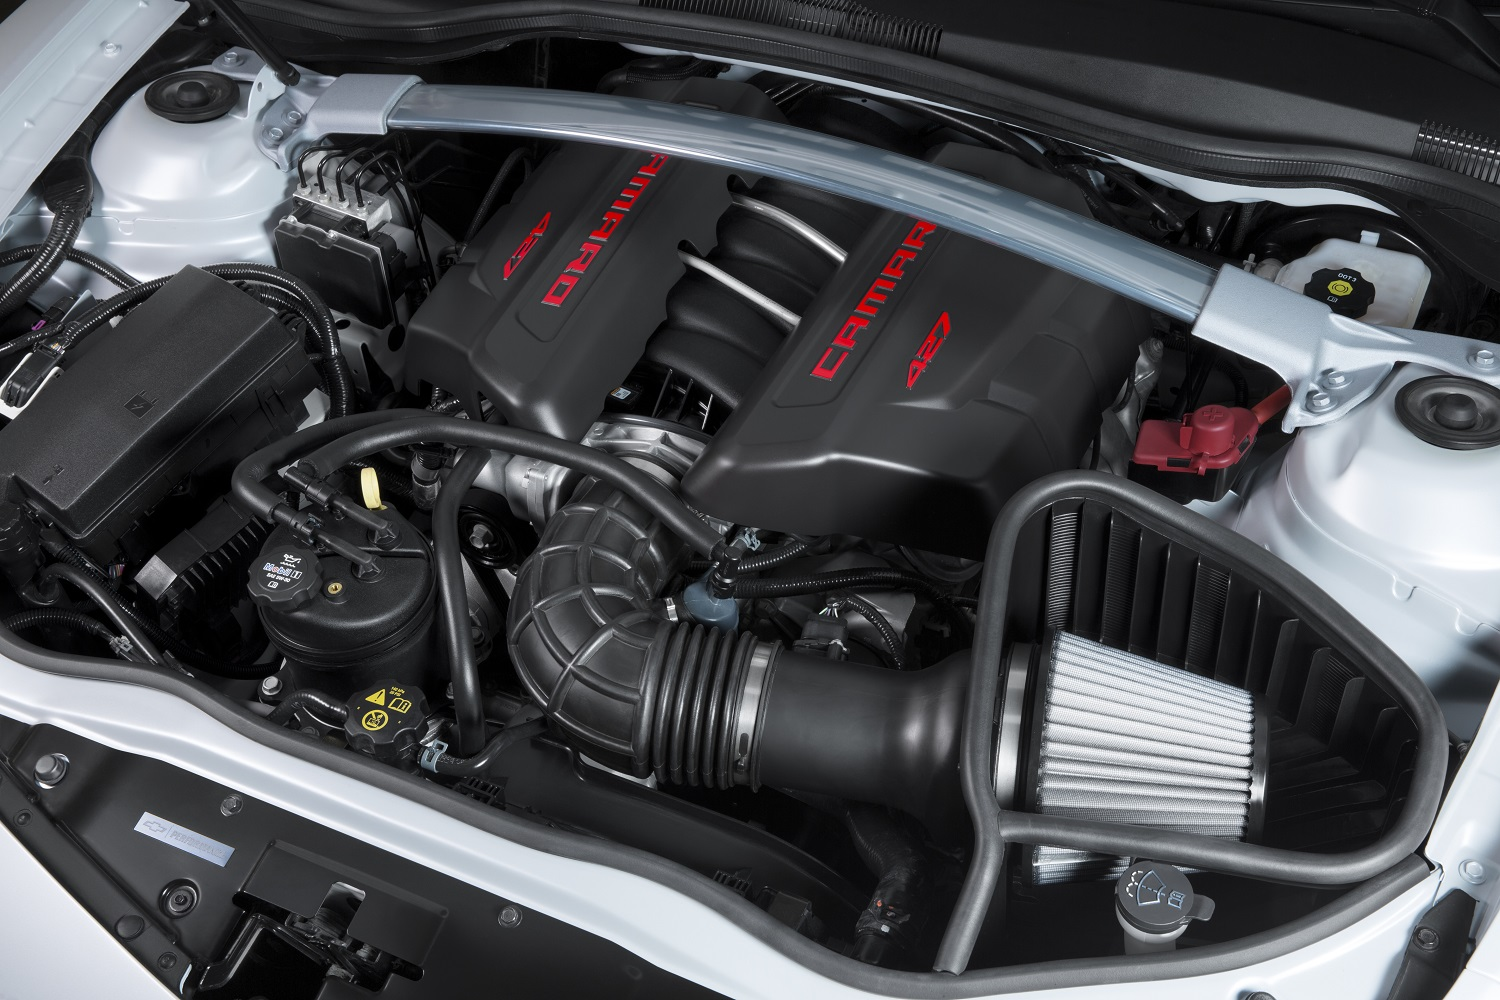 2014 Chevrolet Camaro Z28 engine